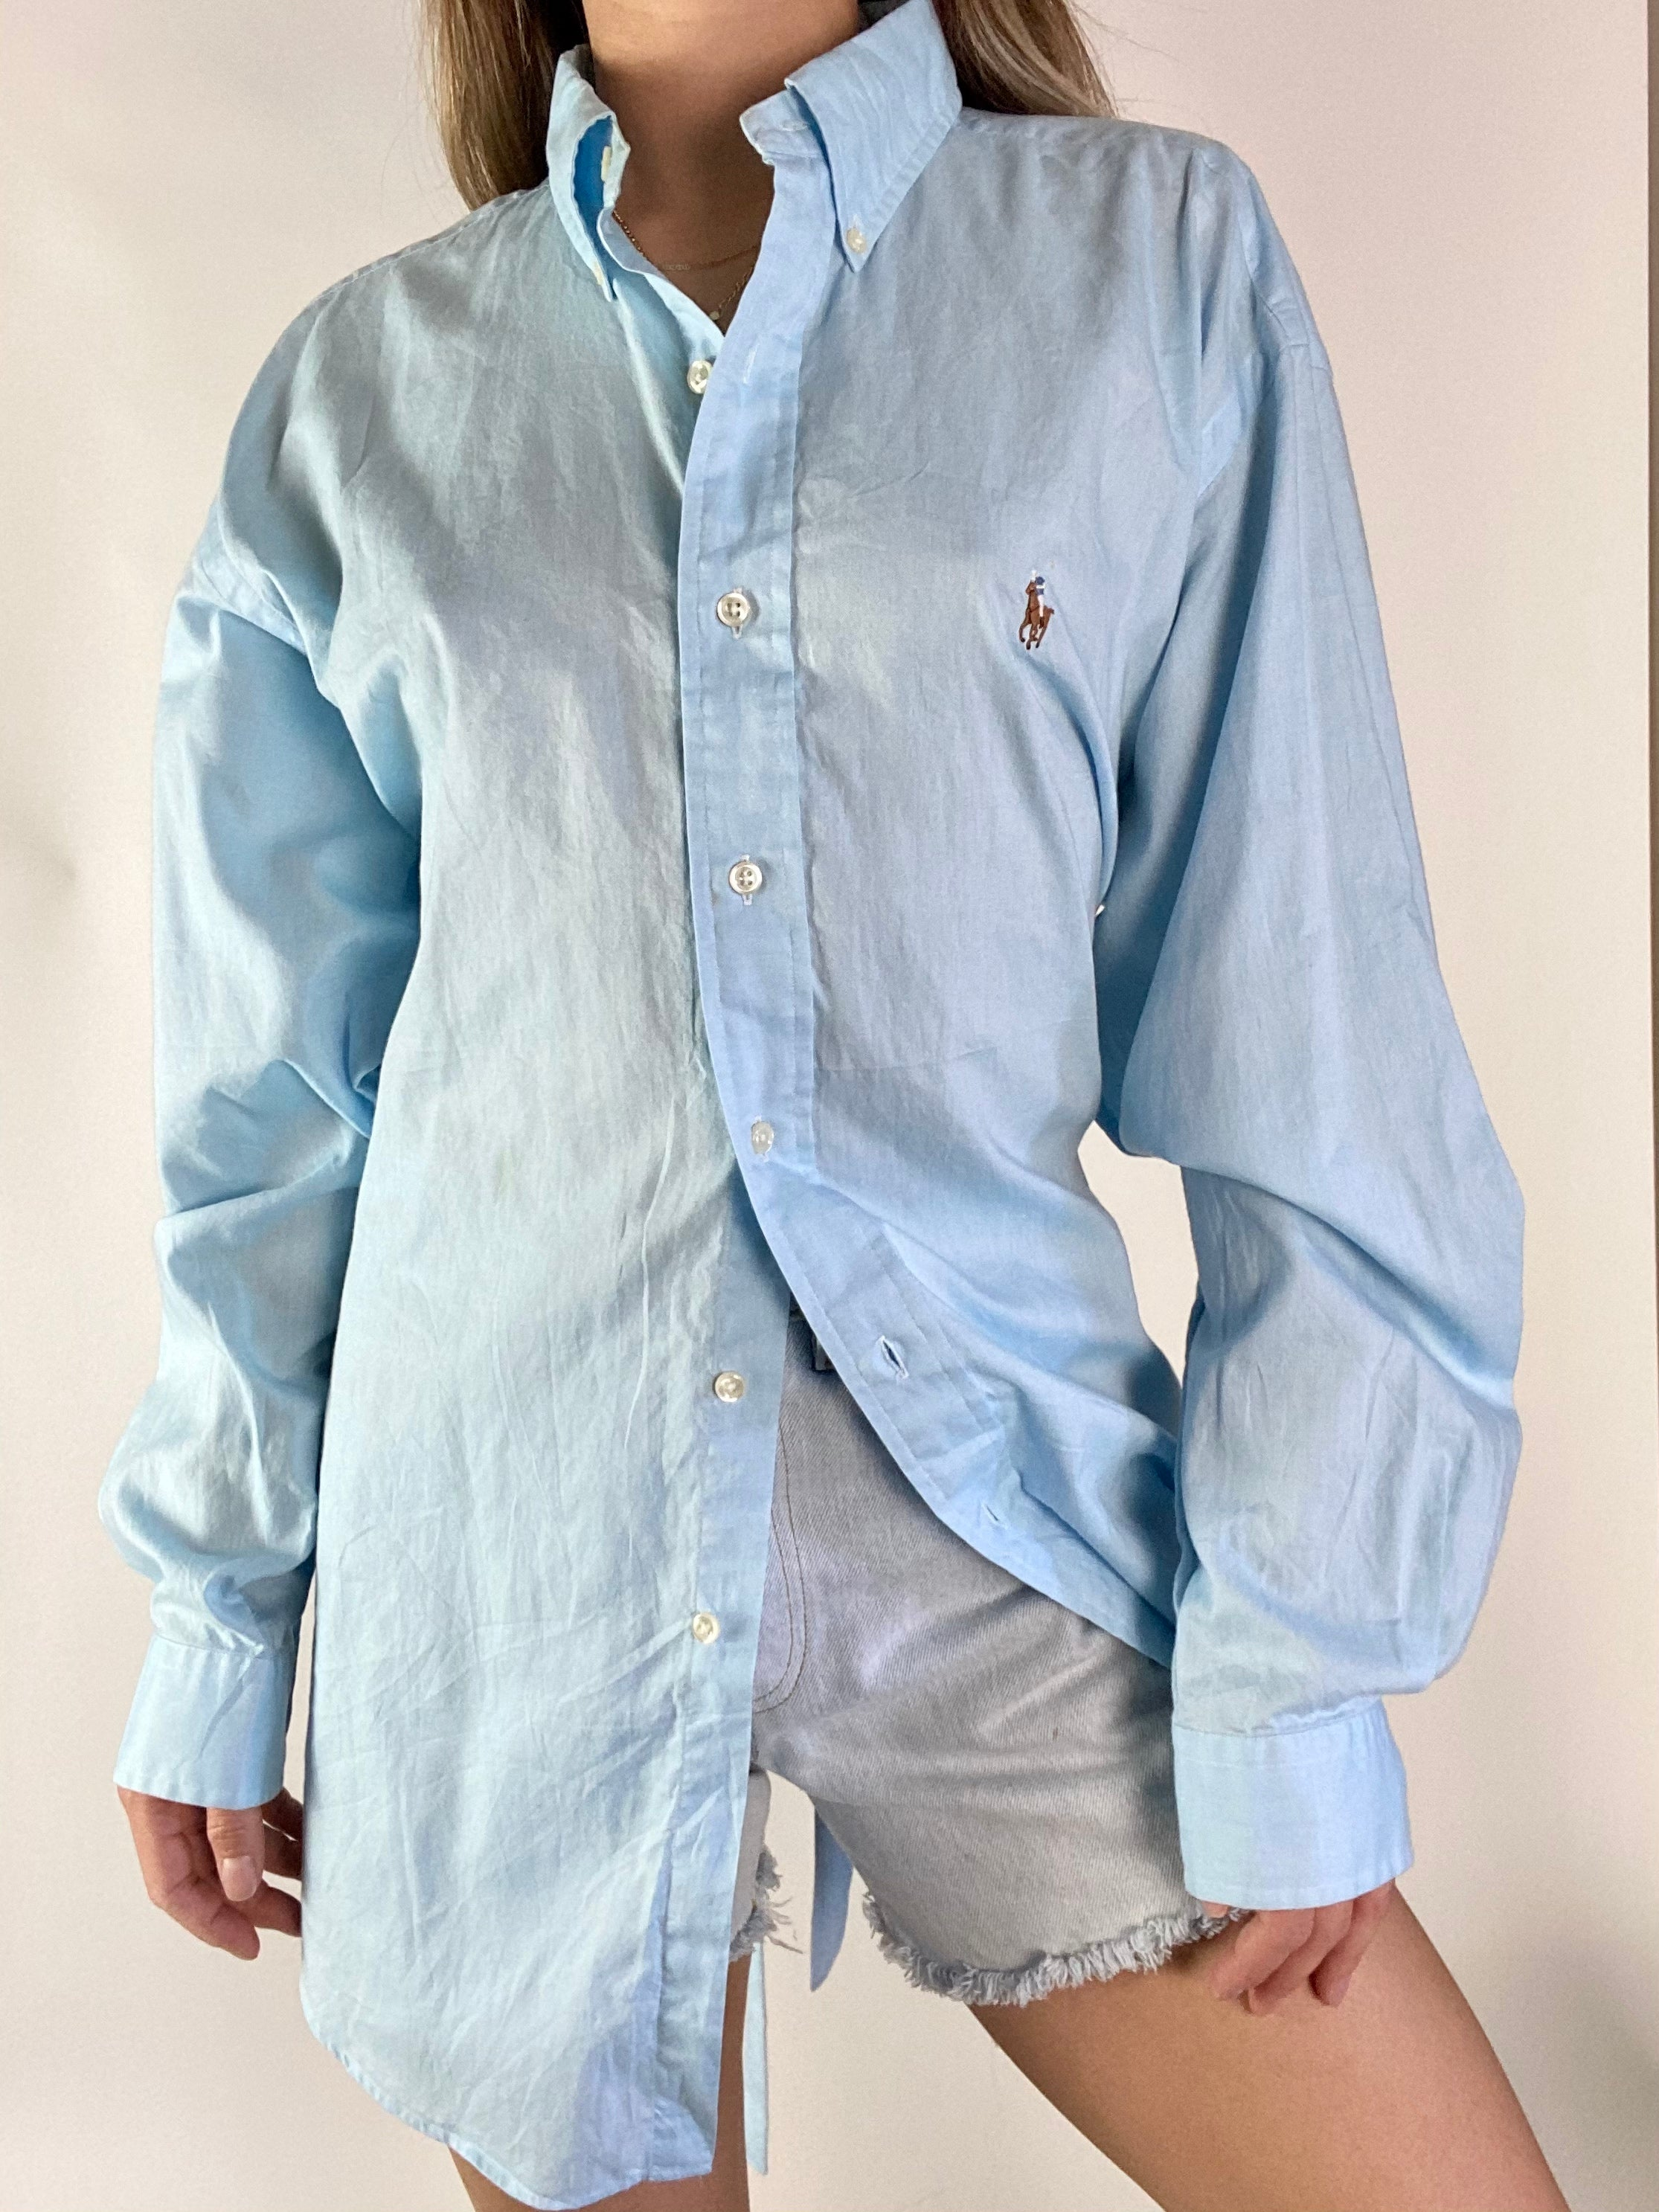 vintage men's polo reworked backless shirts